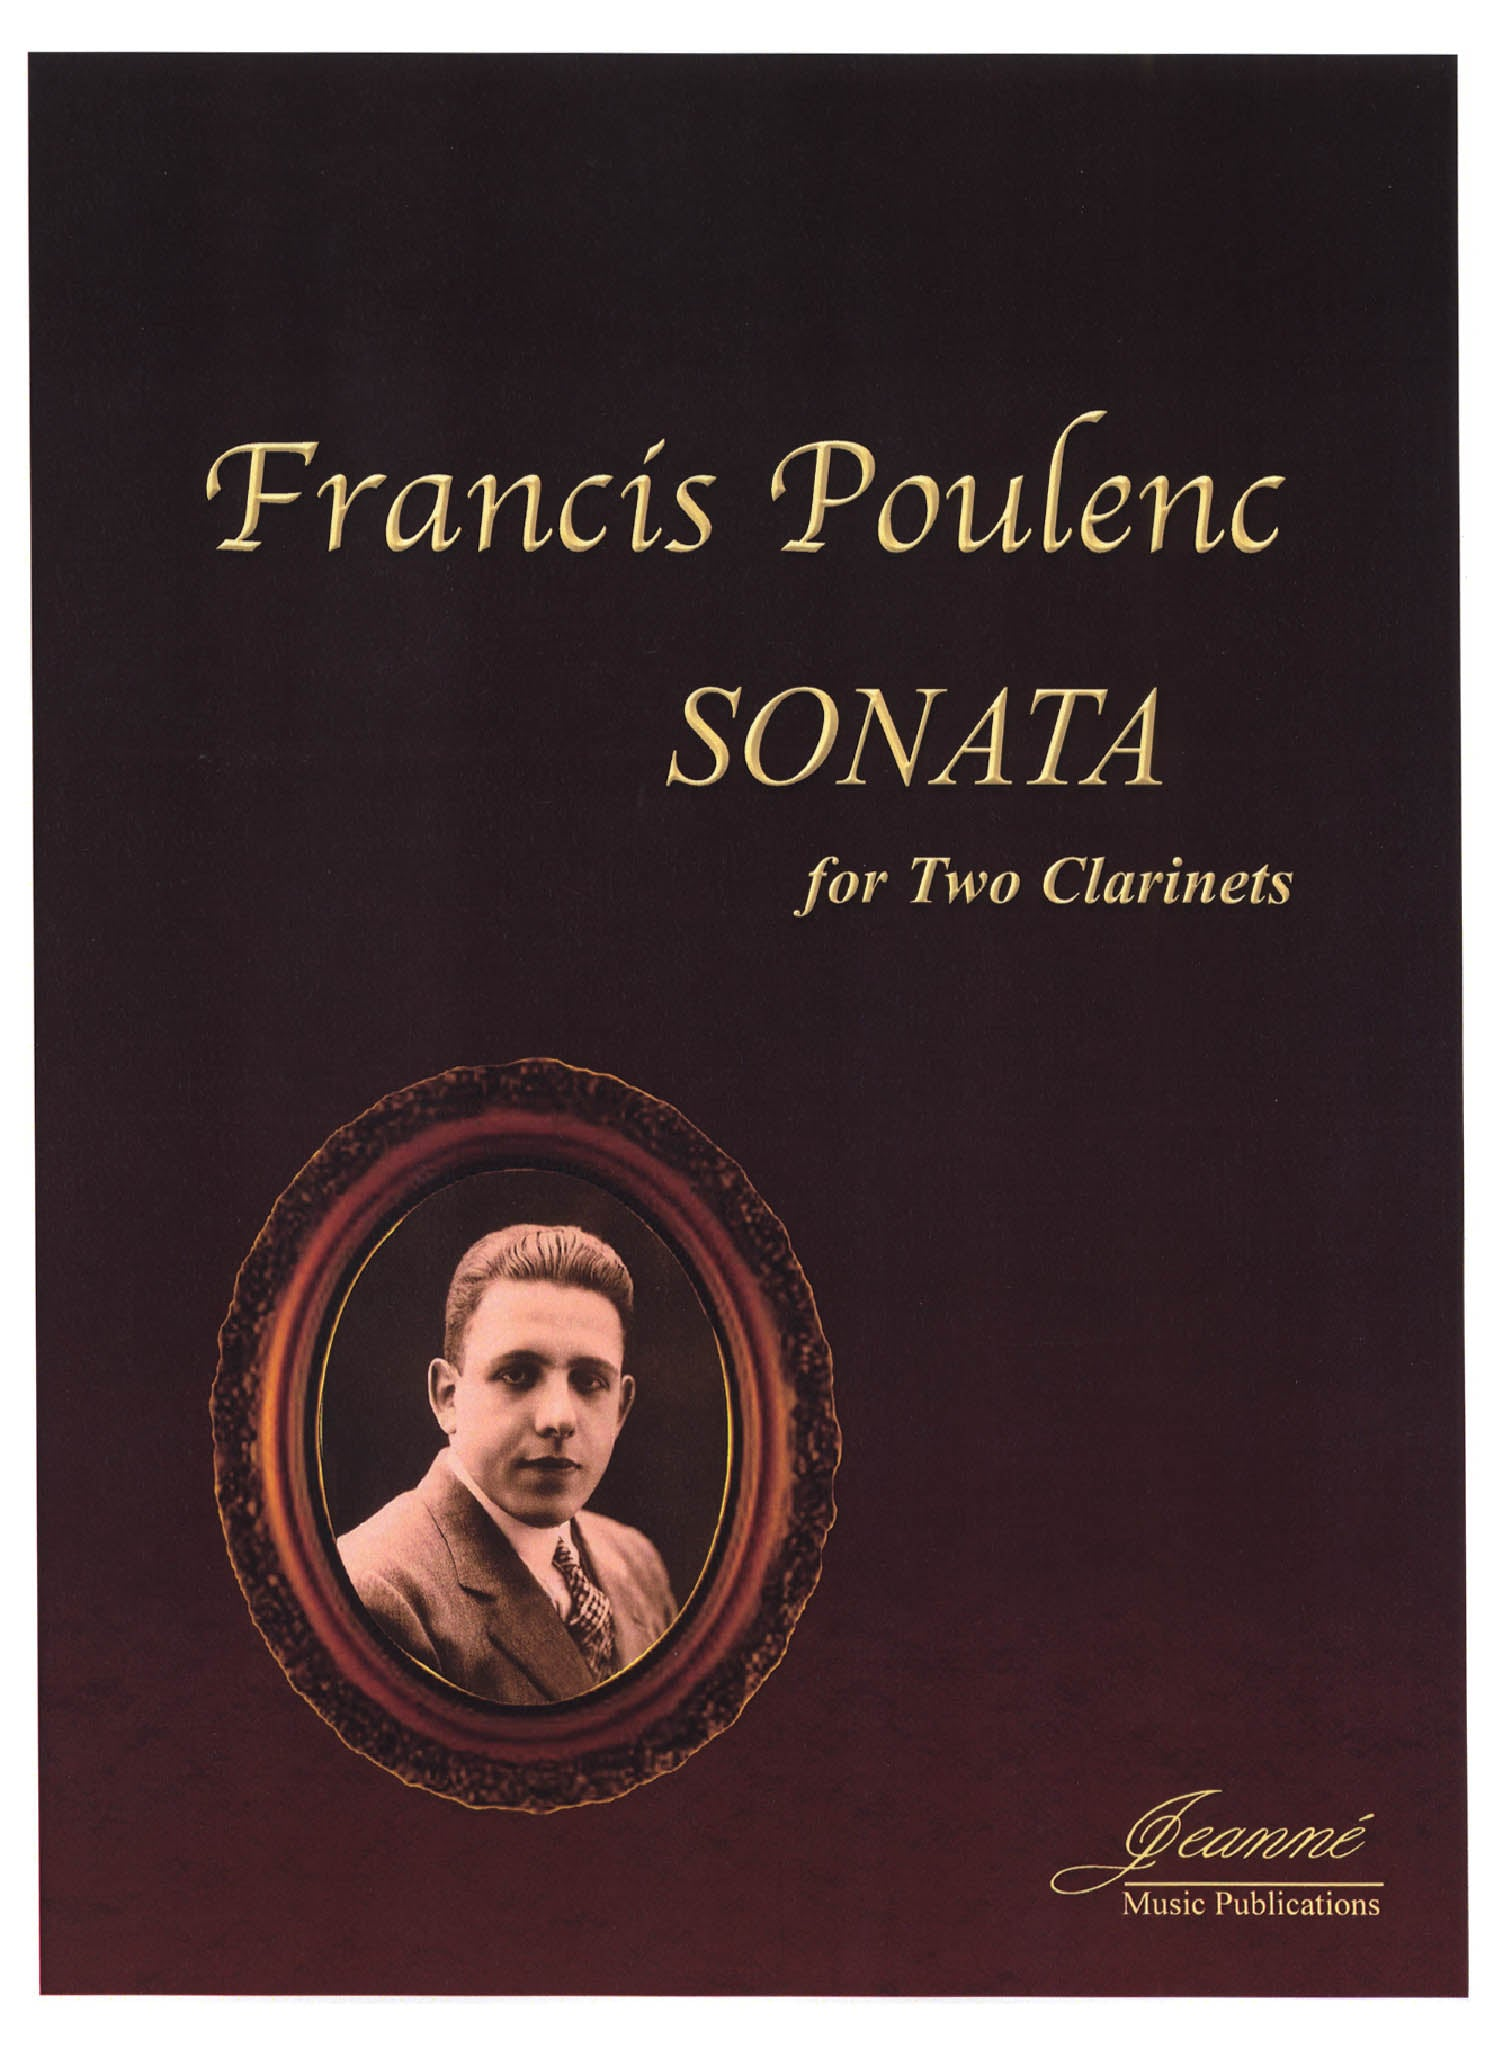 Poulenc Sonata for Two Clarinets, FP 7 Cover